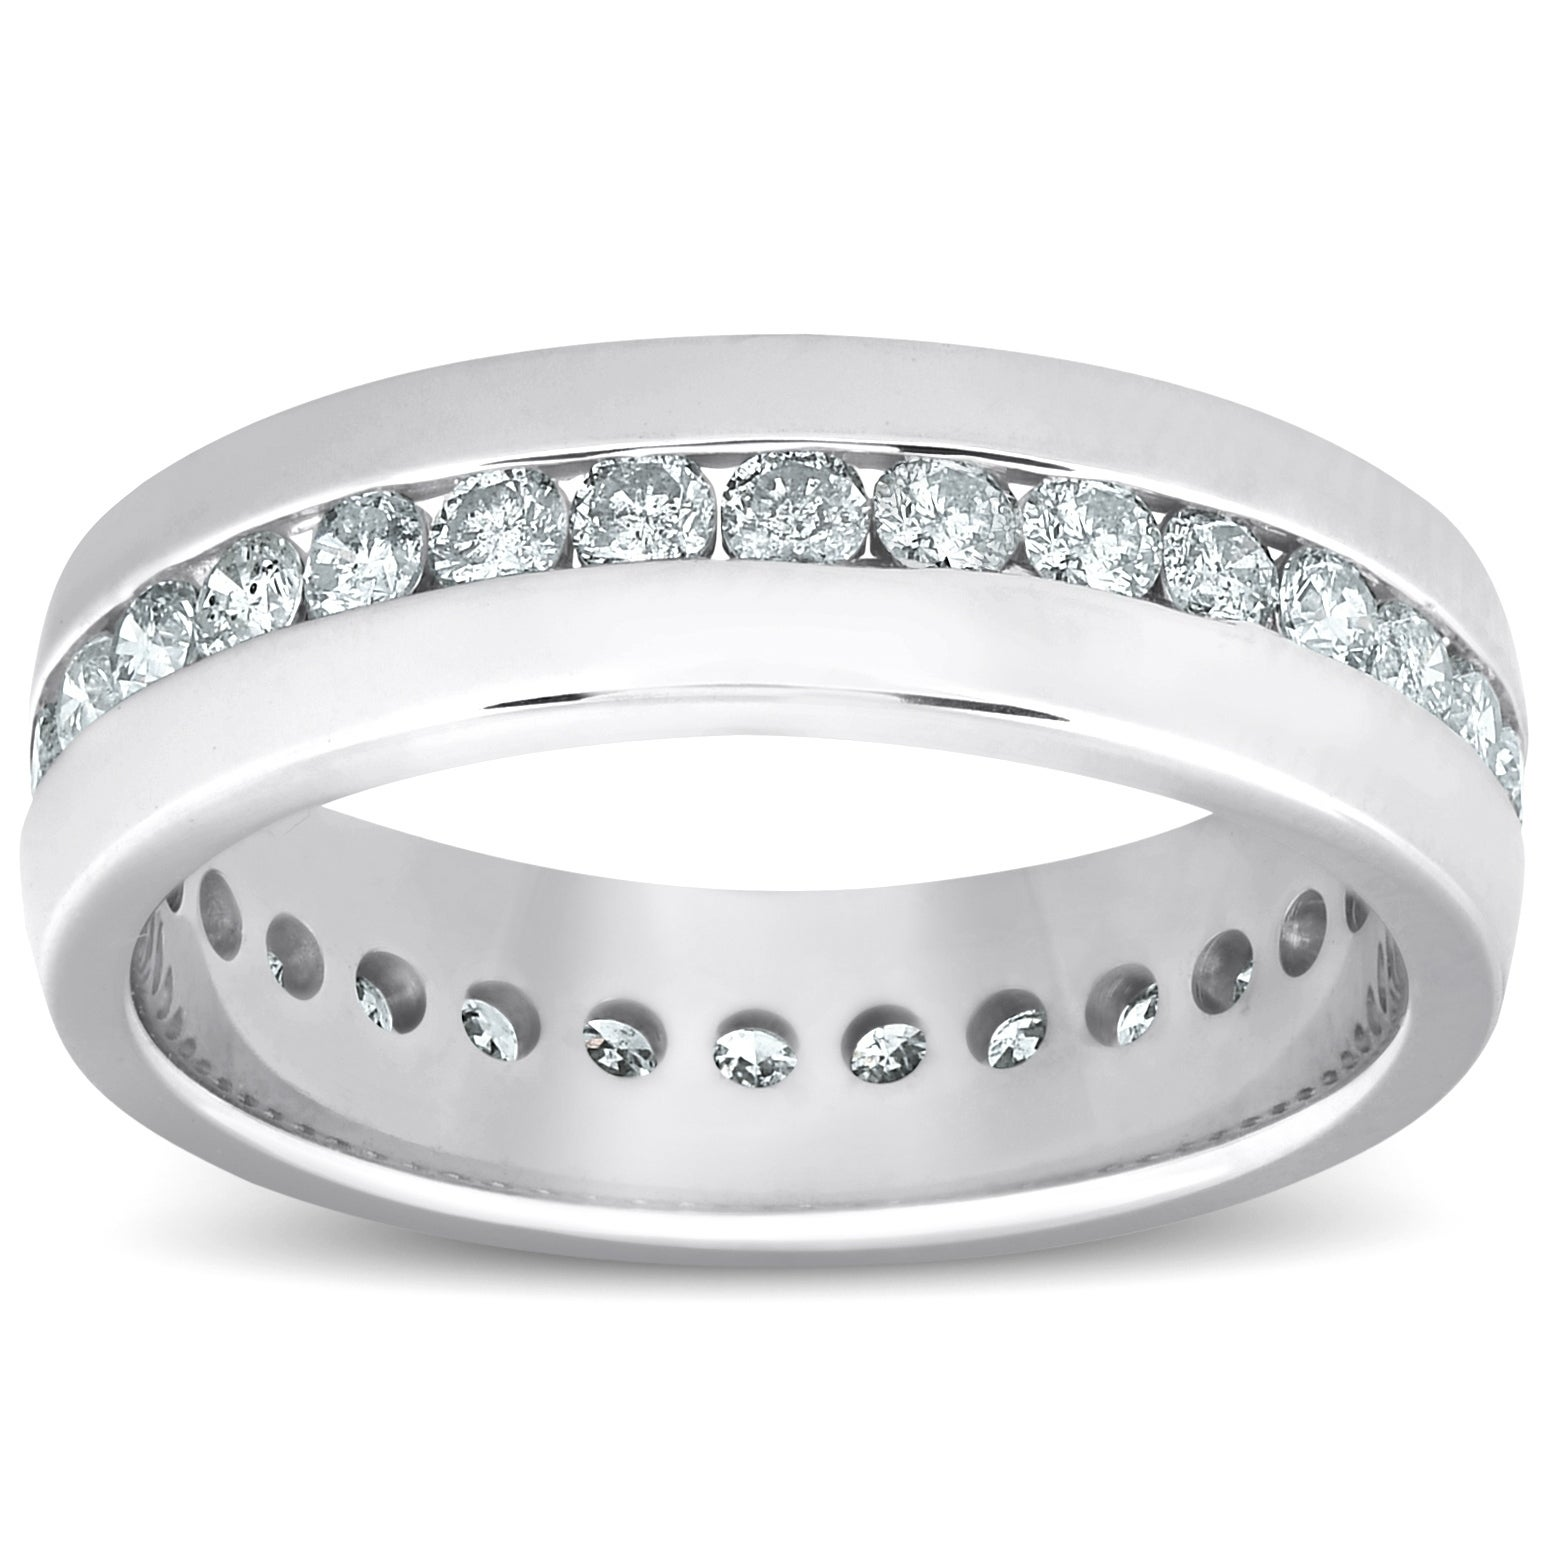 This is a picture of Pompeii34 34k White Gold 34 34/34 ct TDW Mens Diamond Eternity Channel Set Wedding Band High Polished Ring